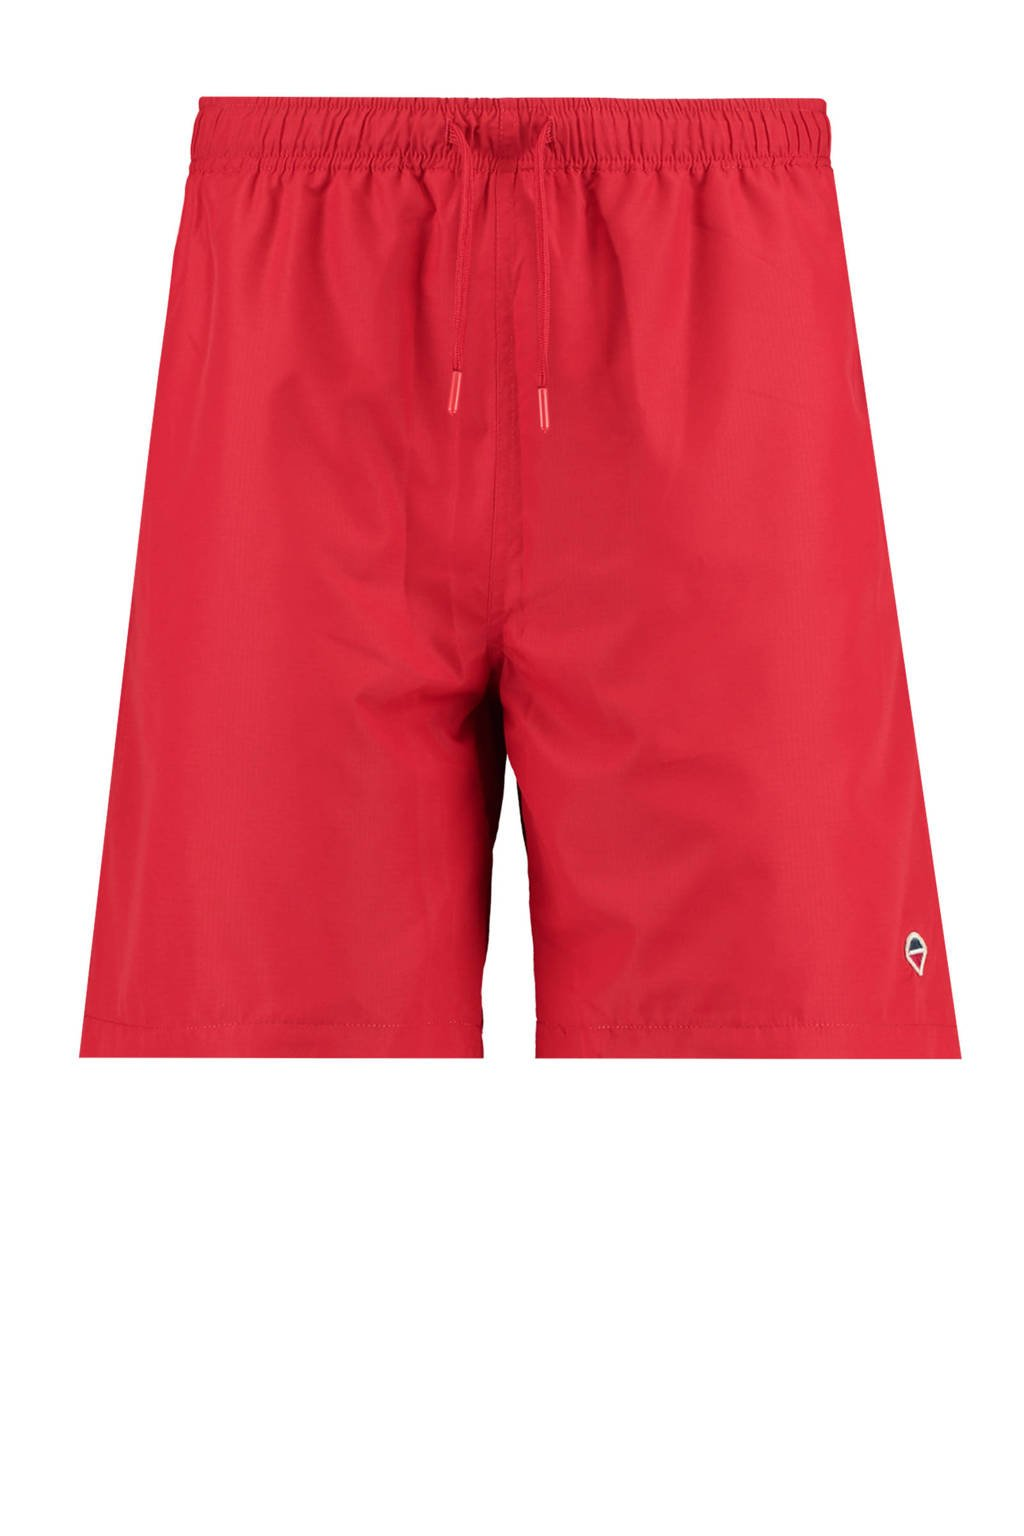 America Today zwemshort Nout rood, Rood